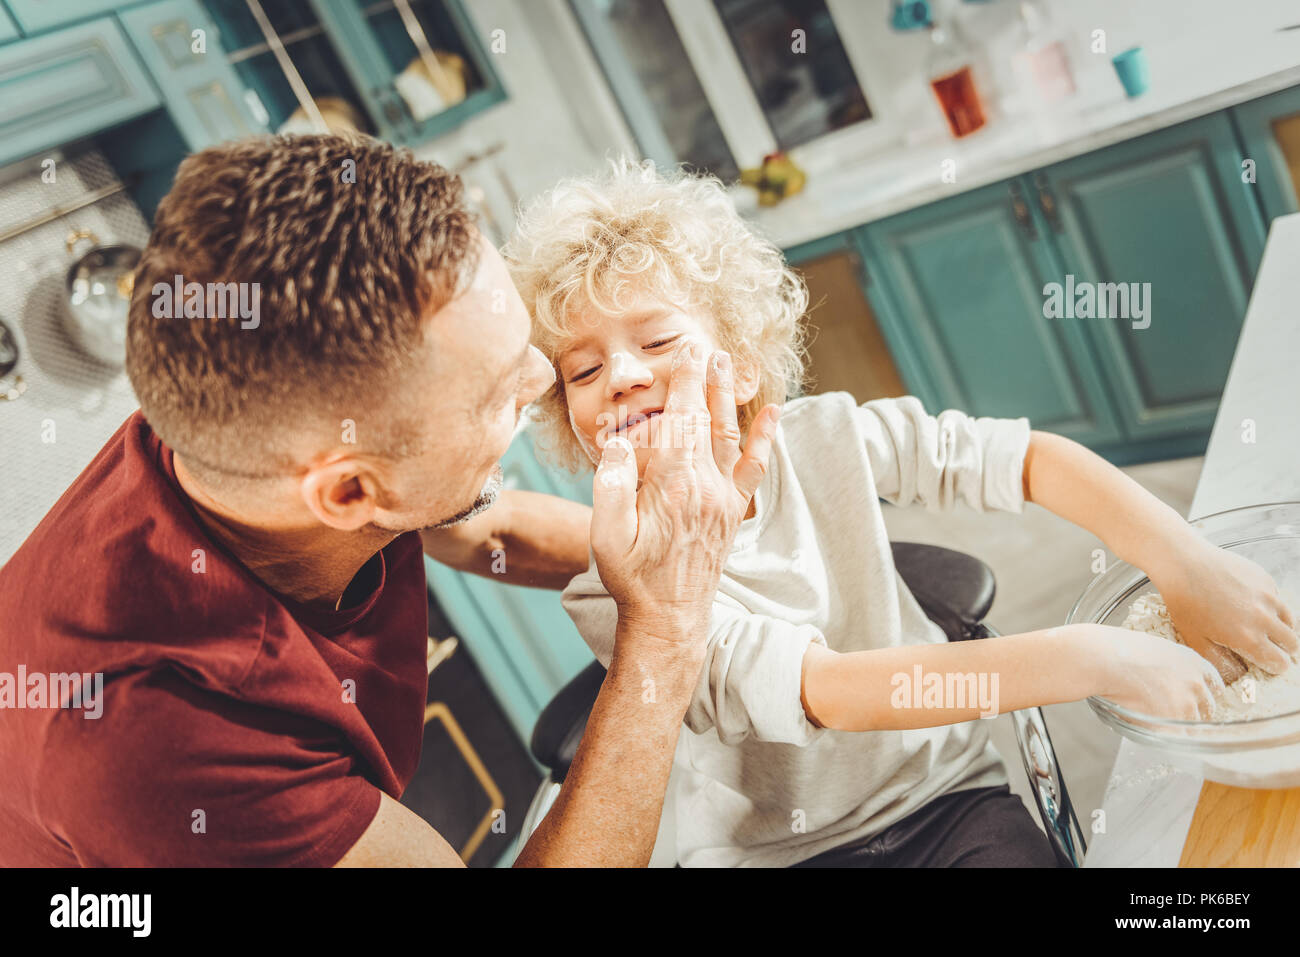 Curly blonde-haired boy feeling happy spending morning with father - Stock Image